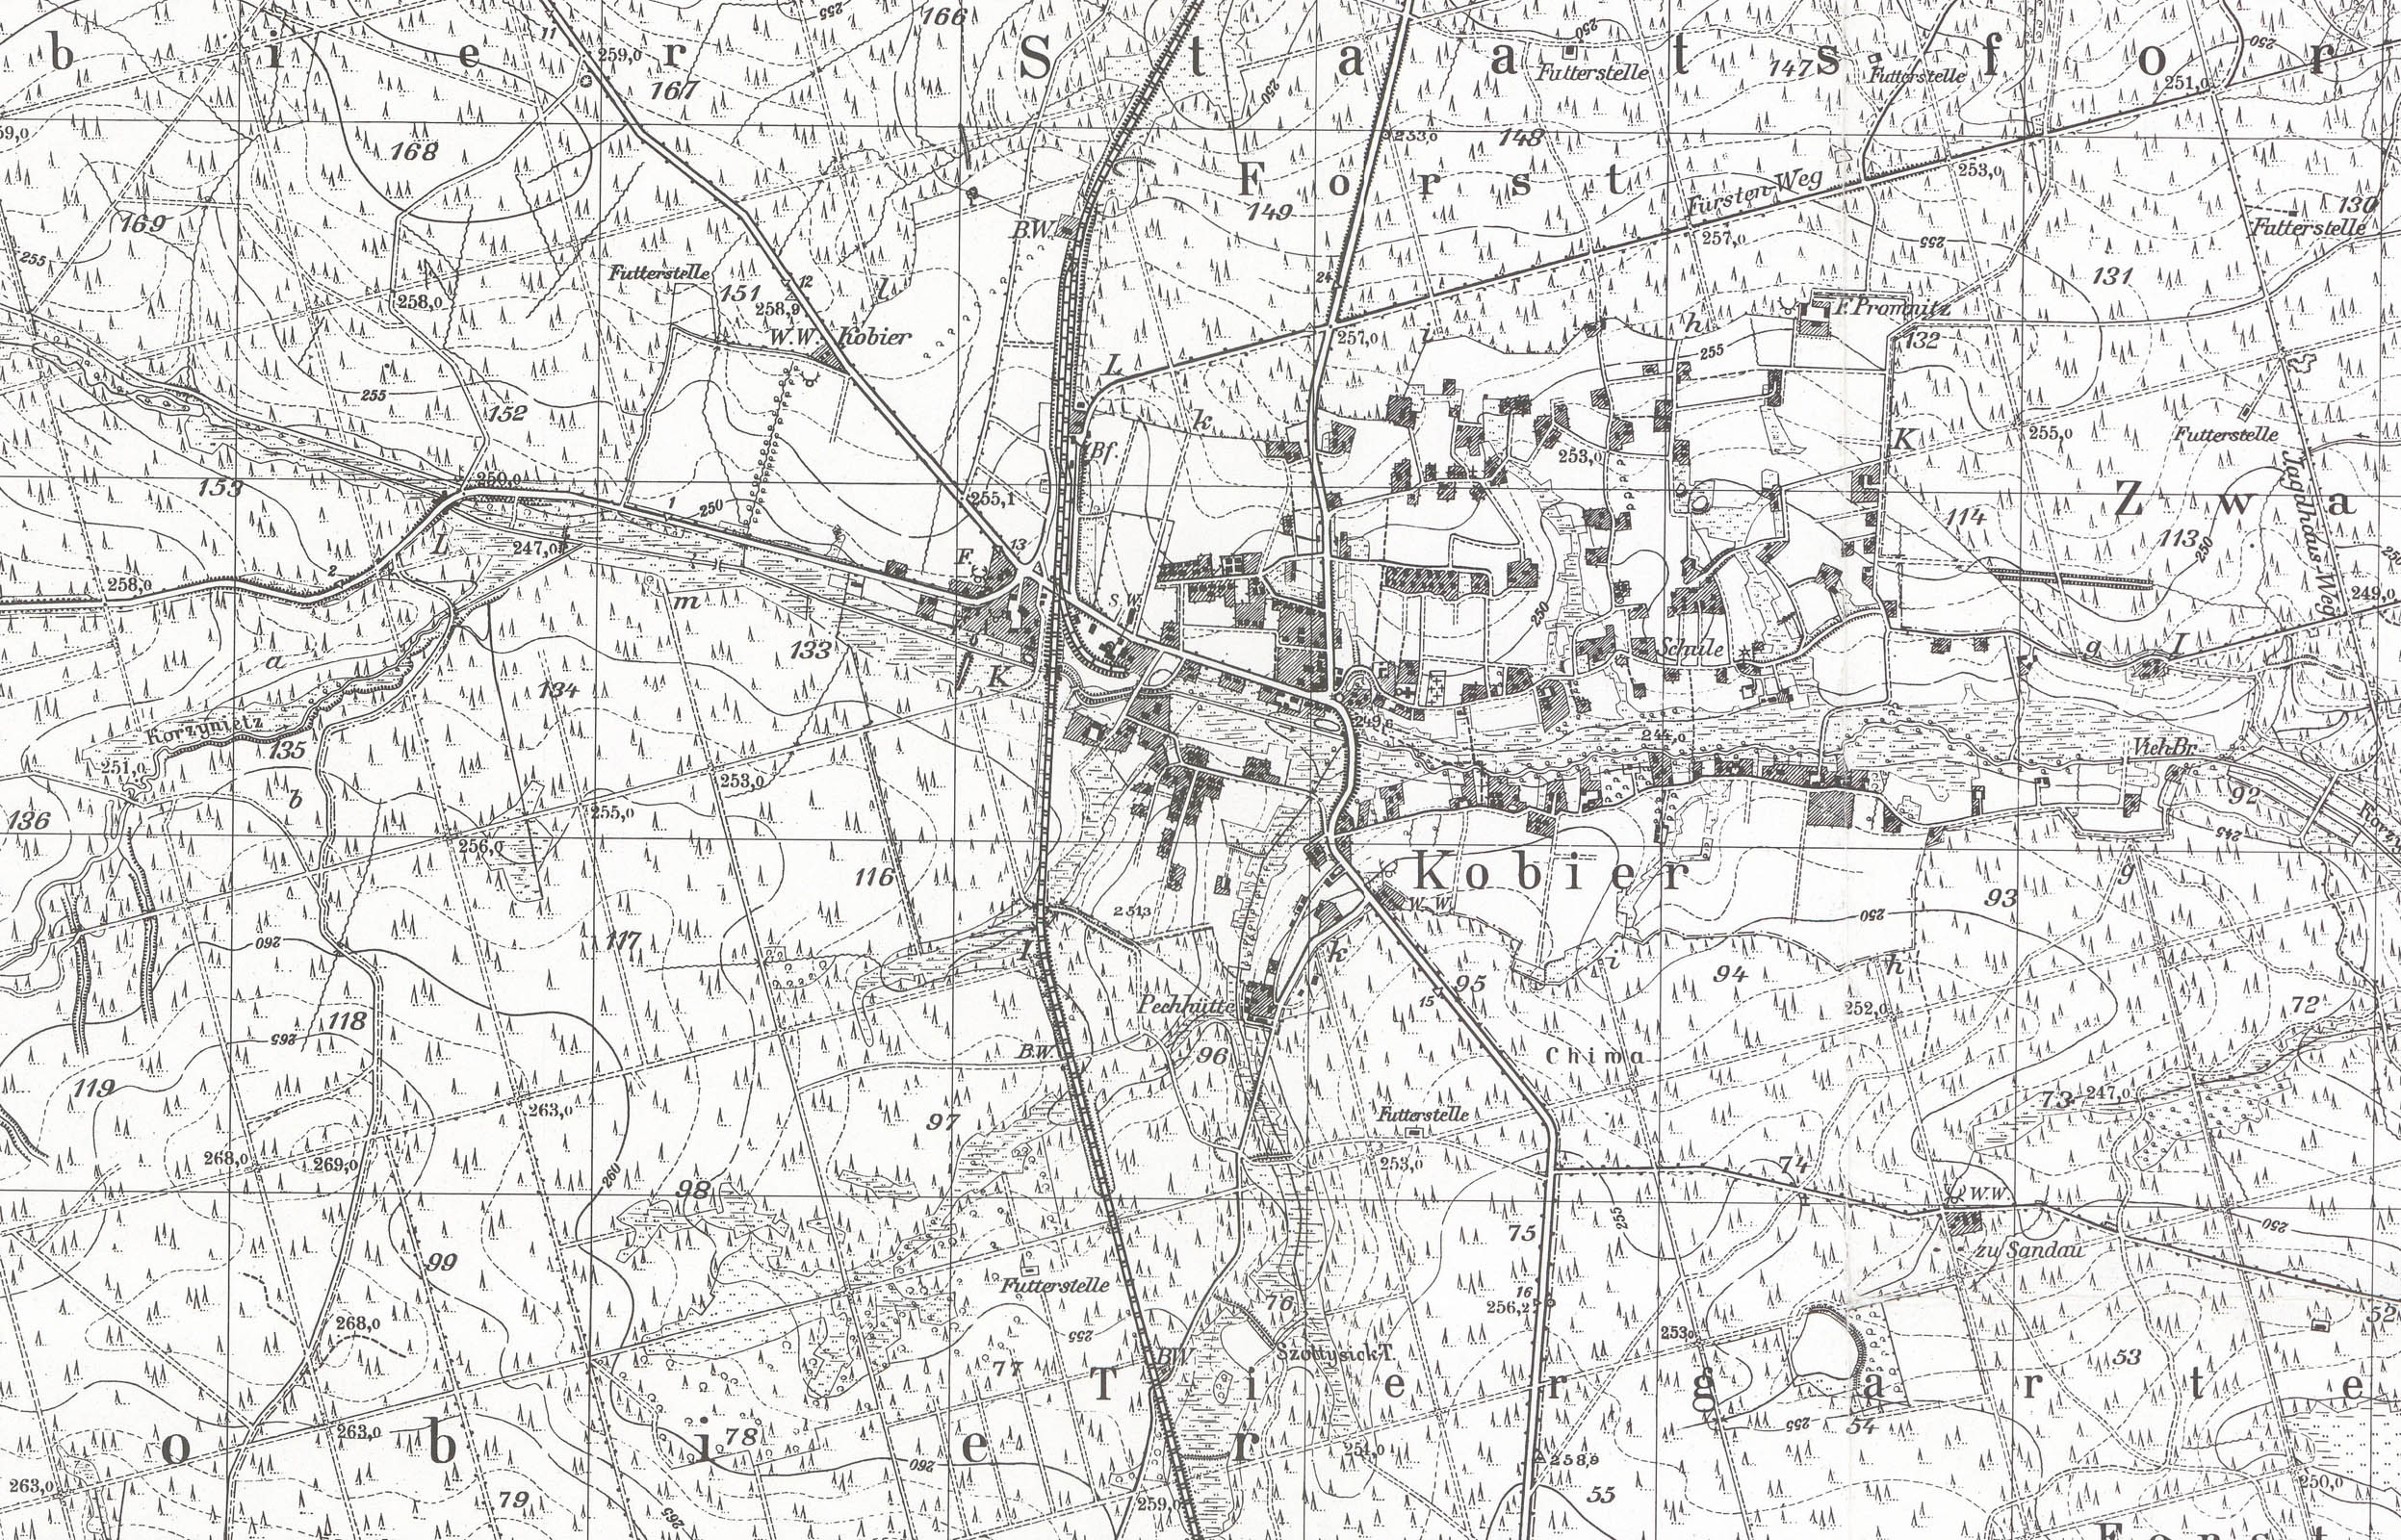 Kobior ordinance survey map 1944